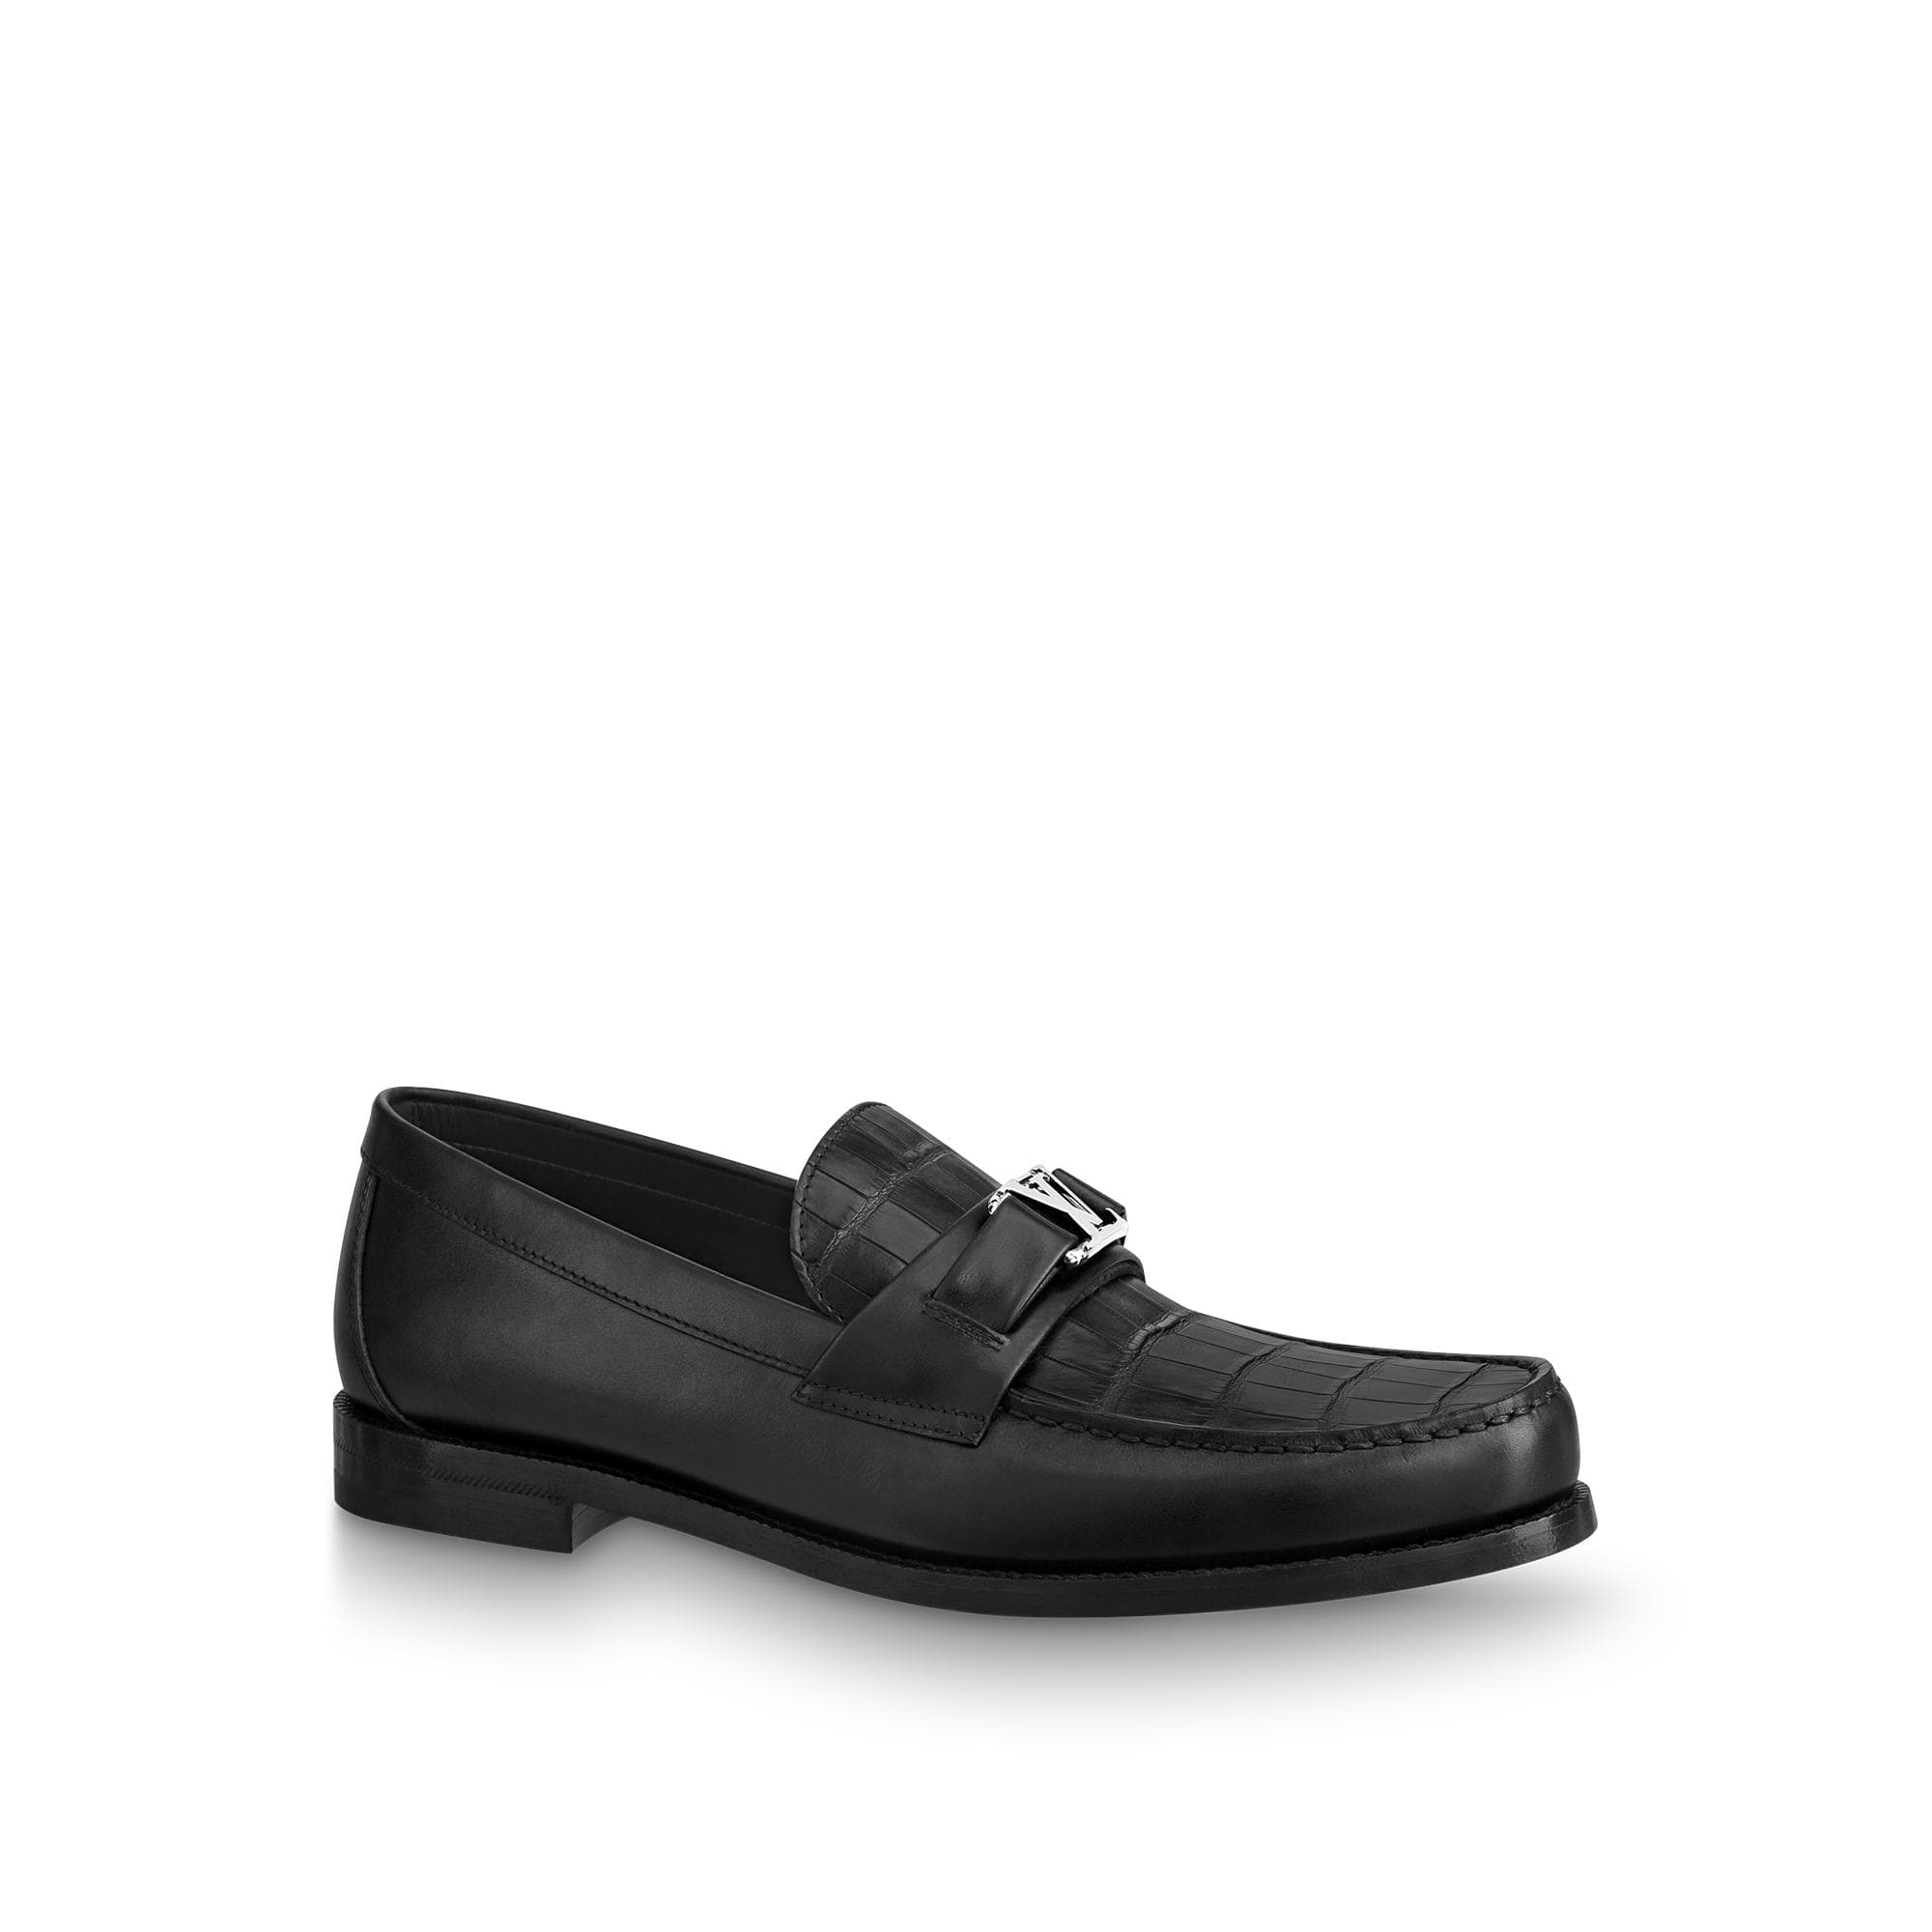 유럽직배송 루이비통 LOUIS VUITTON Major Loafers 1A5H9R